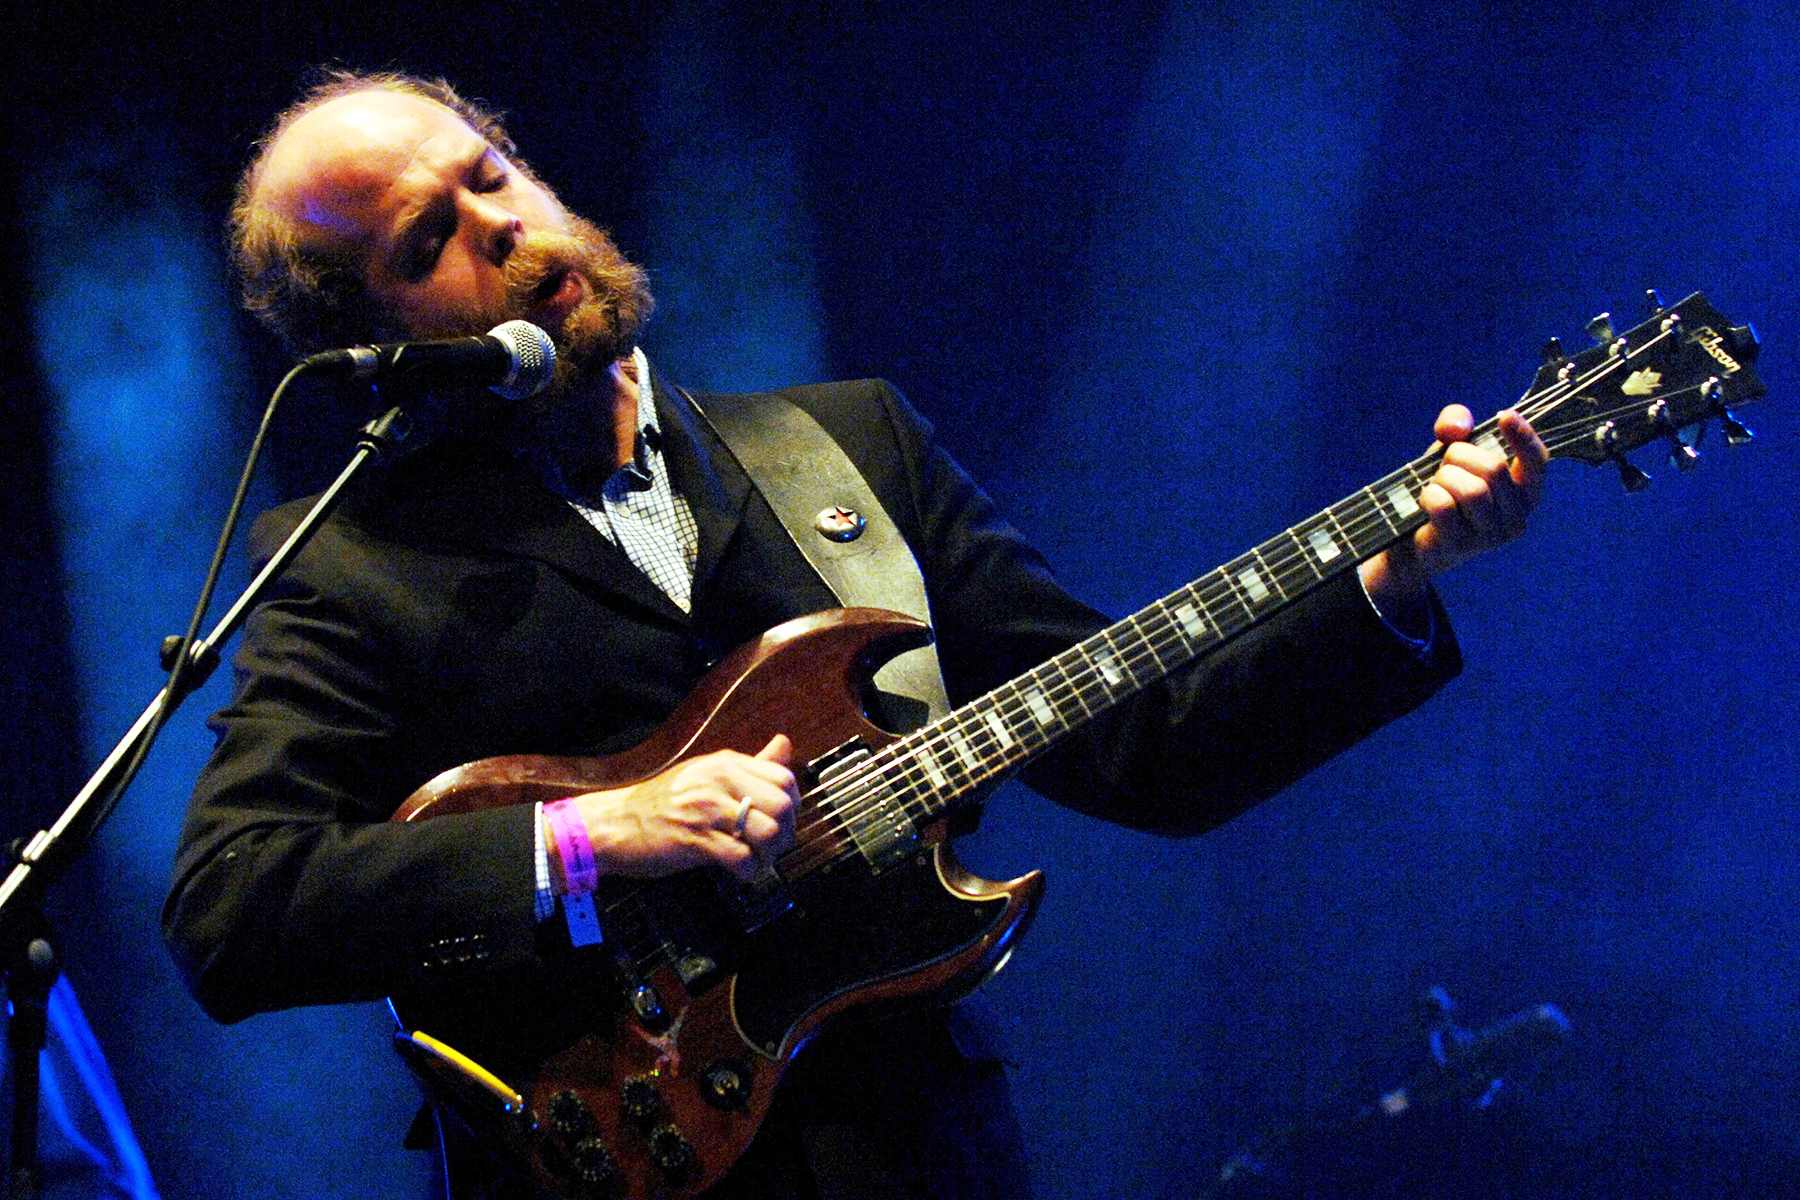 """bonnie """"prince"""" billy: will oldham on 15 songs that span his career"""